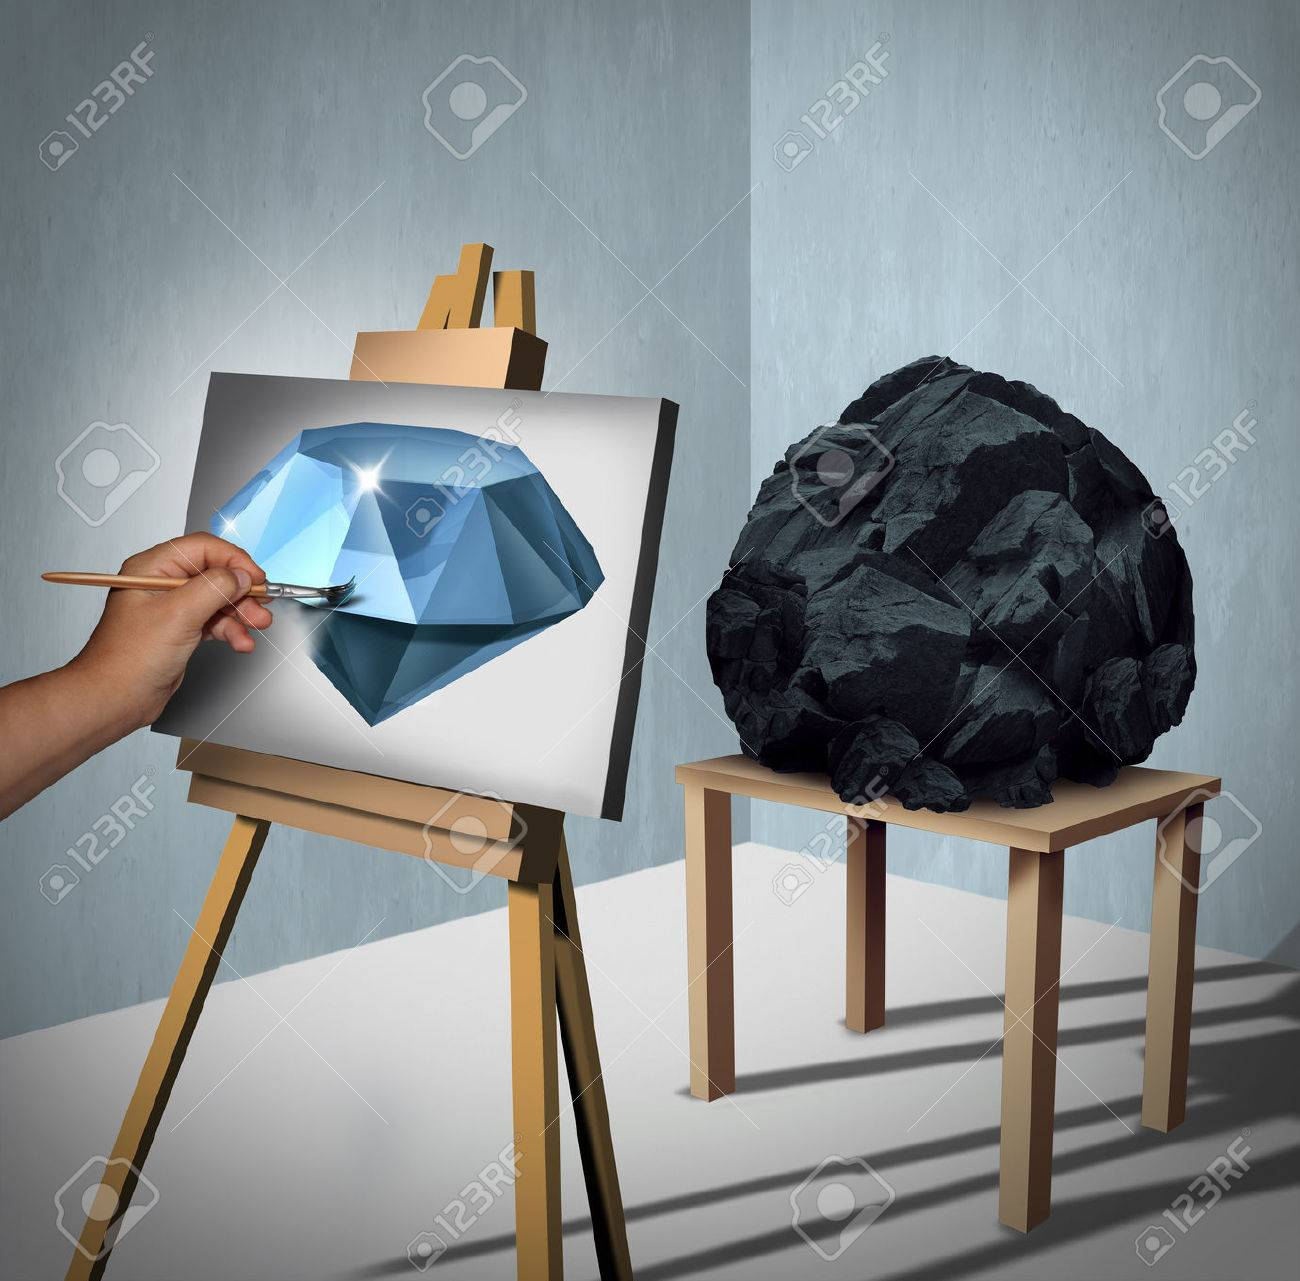 Seeing the possibilities or value opportunity and creating wealth financial concept as a painter looking at a rock or coal and inertpreting the object as a painted precious diamond on canvas with 3D illustration elements. Standard-Bild - 58584036